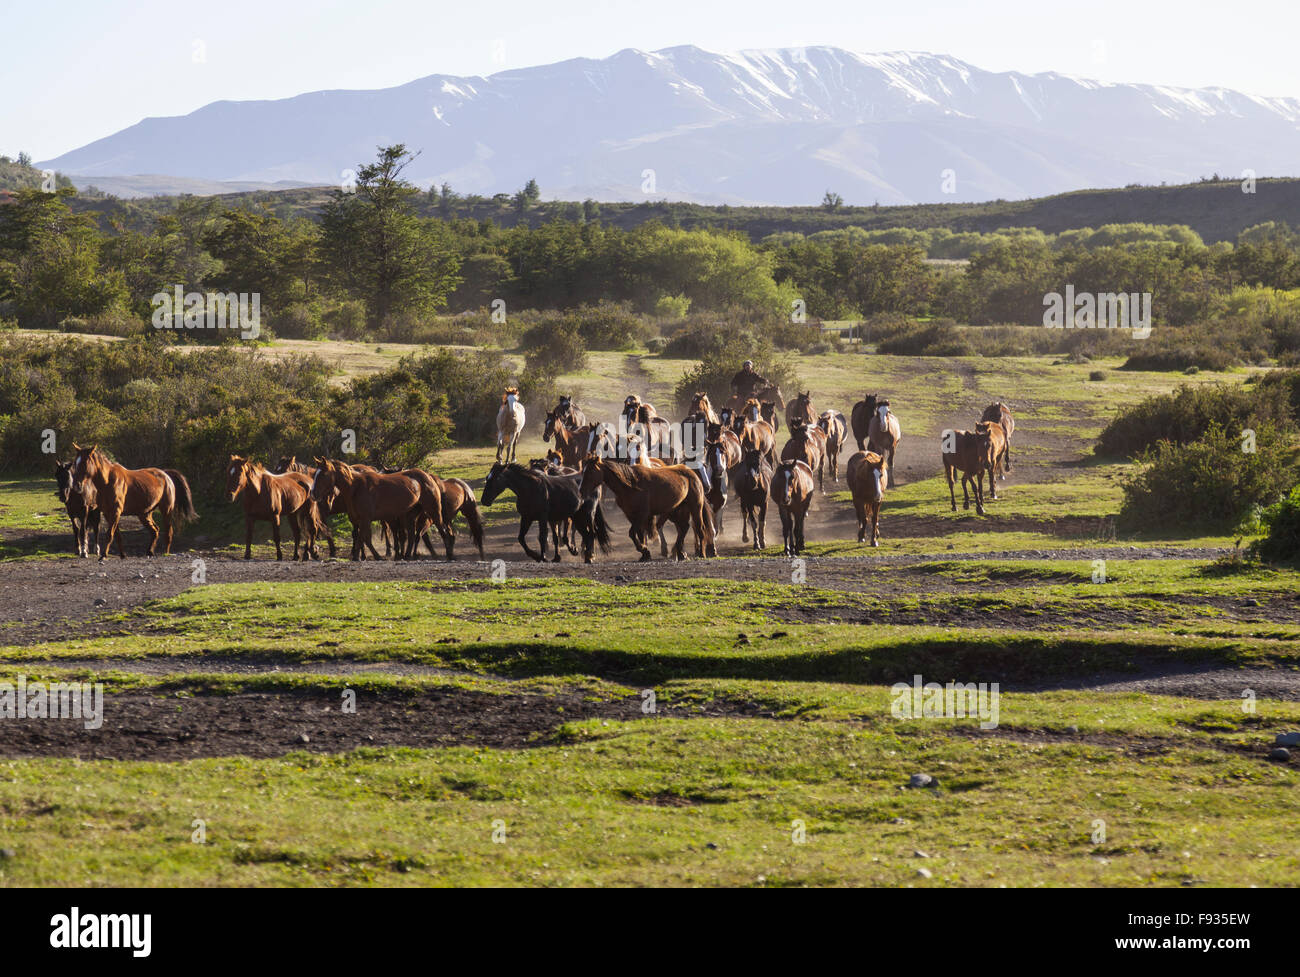 Rounding up horses, Patagonia - Stock Image